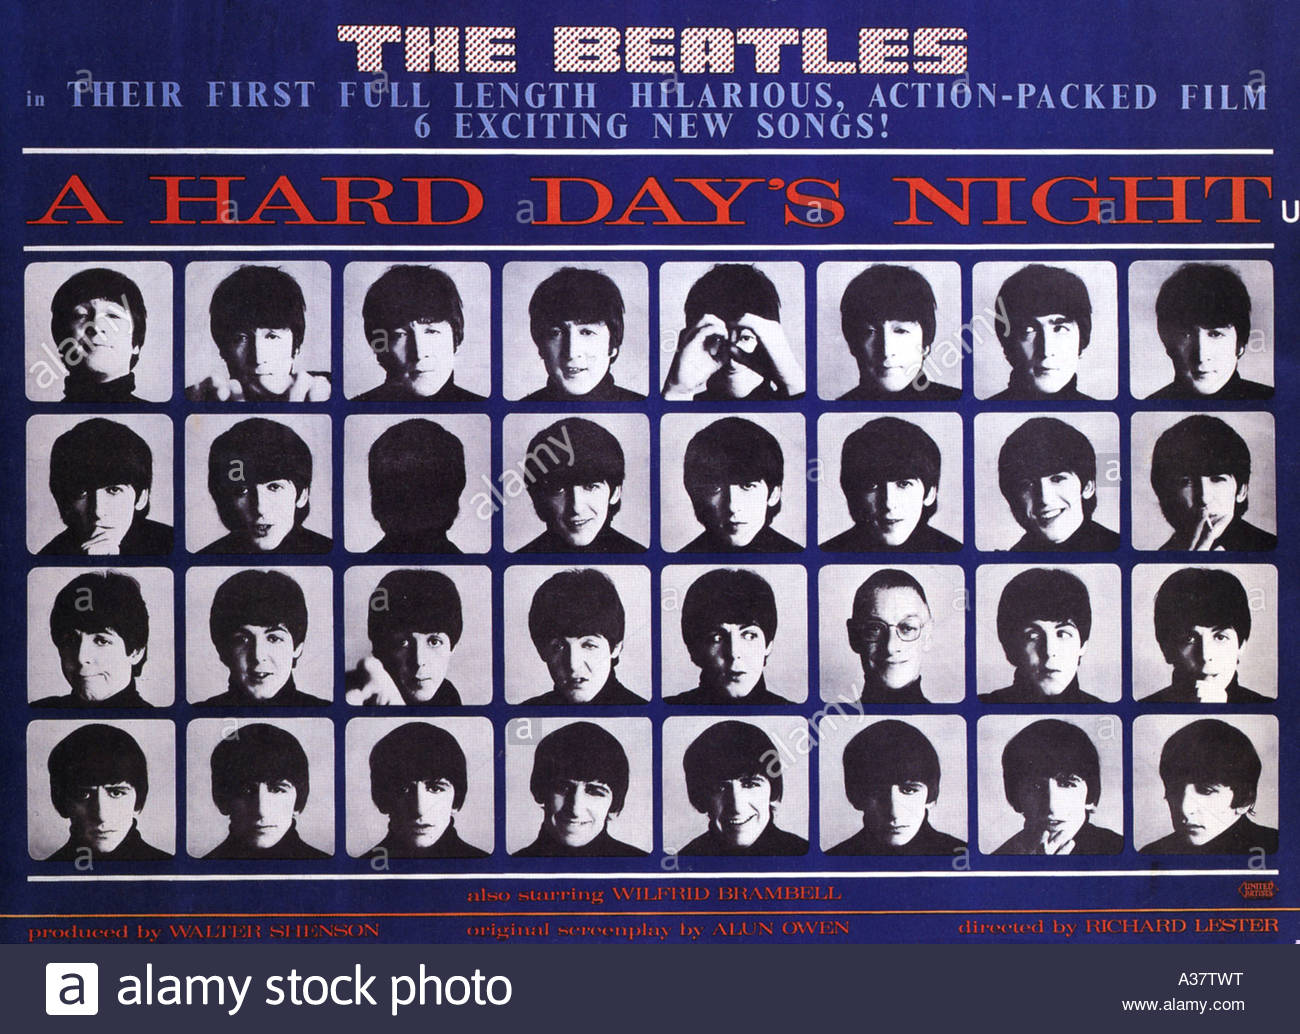 A HARD DAY'S NIGHT poster for 1964 UA film with the Beatles - Stock Image